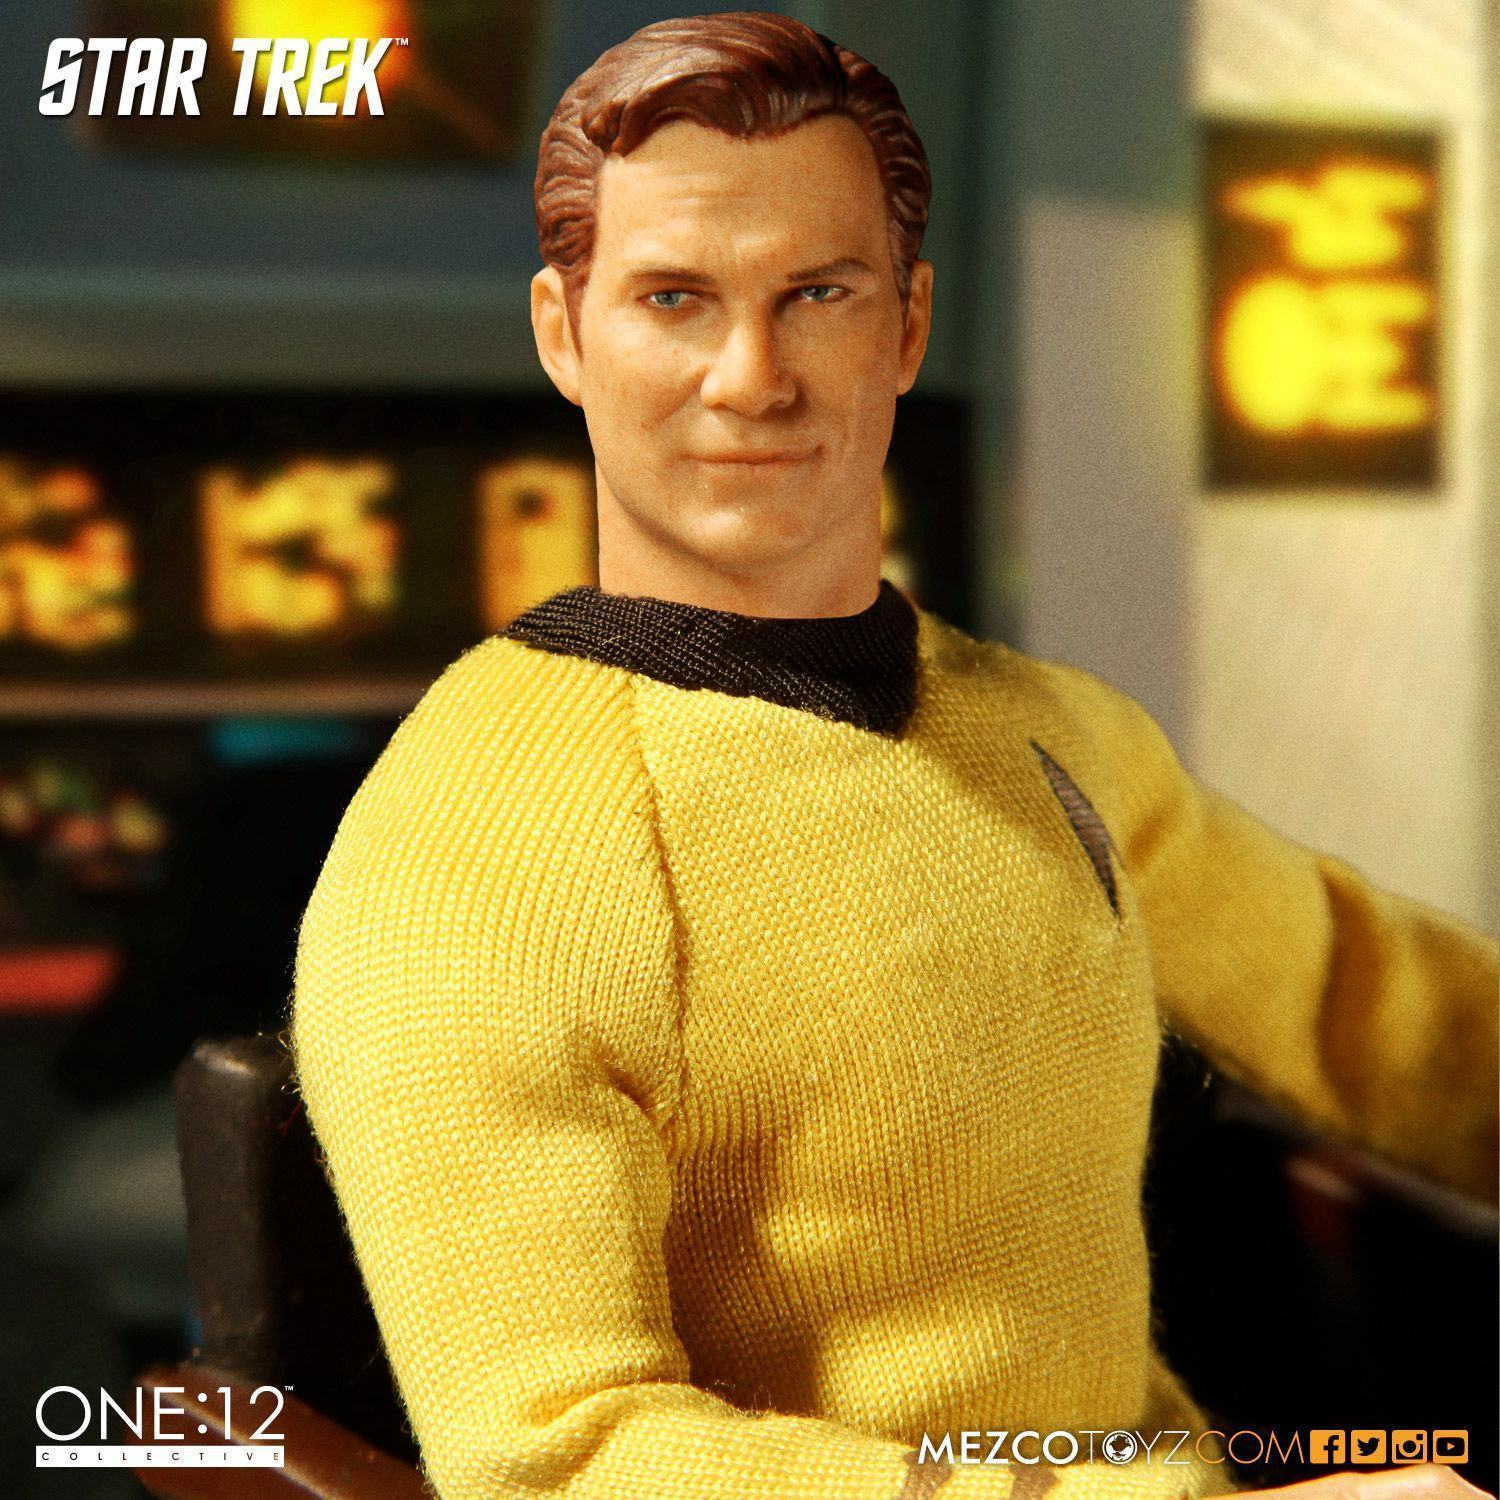 Kirk-Star-Trek-One-12-Collective-Action-Figure-04